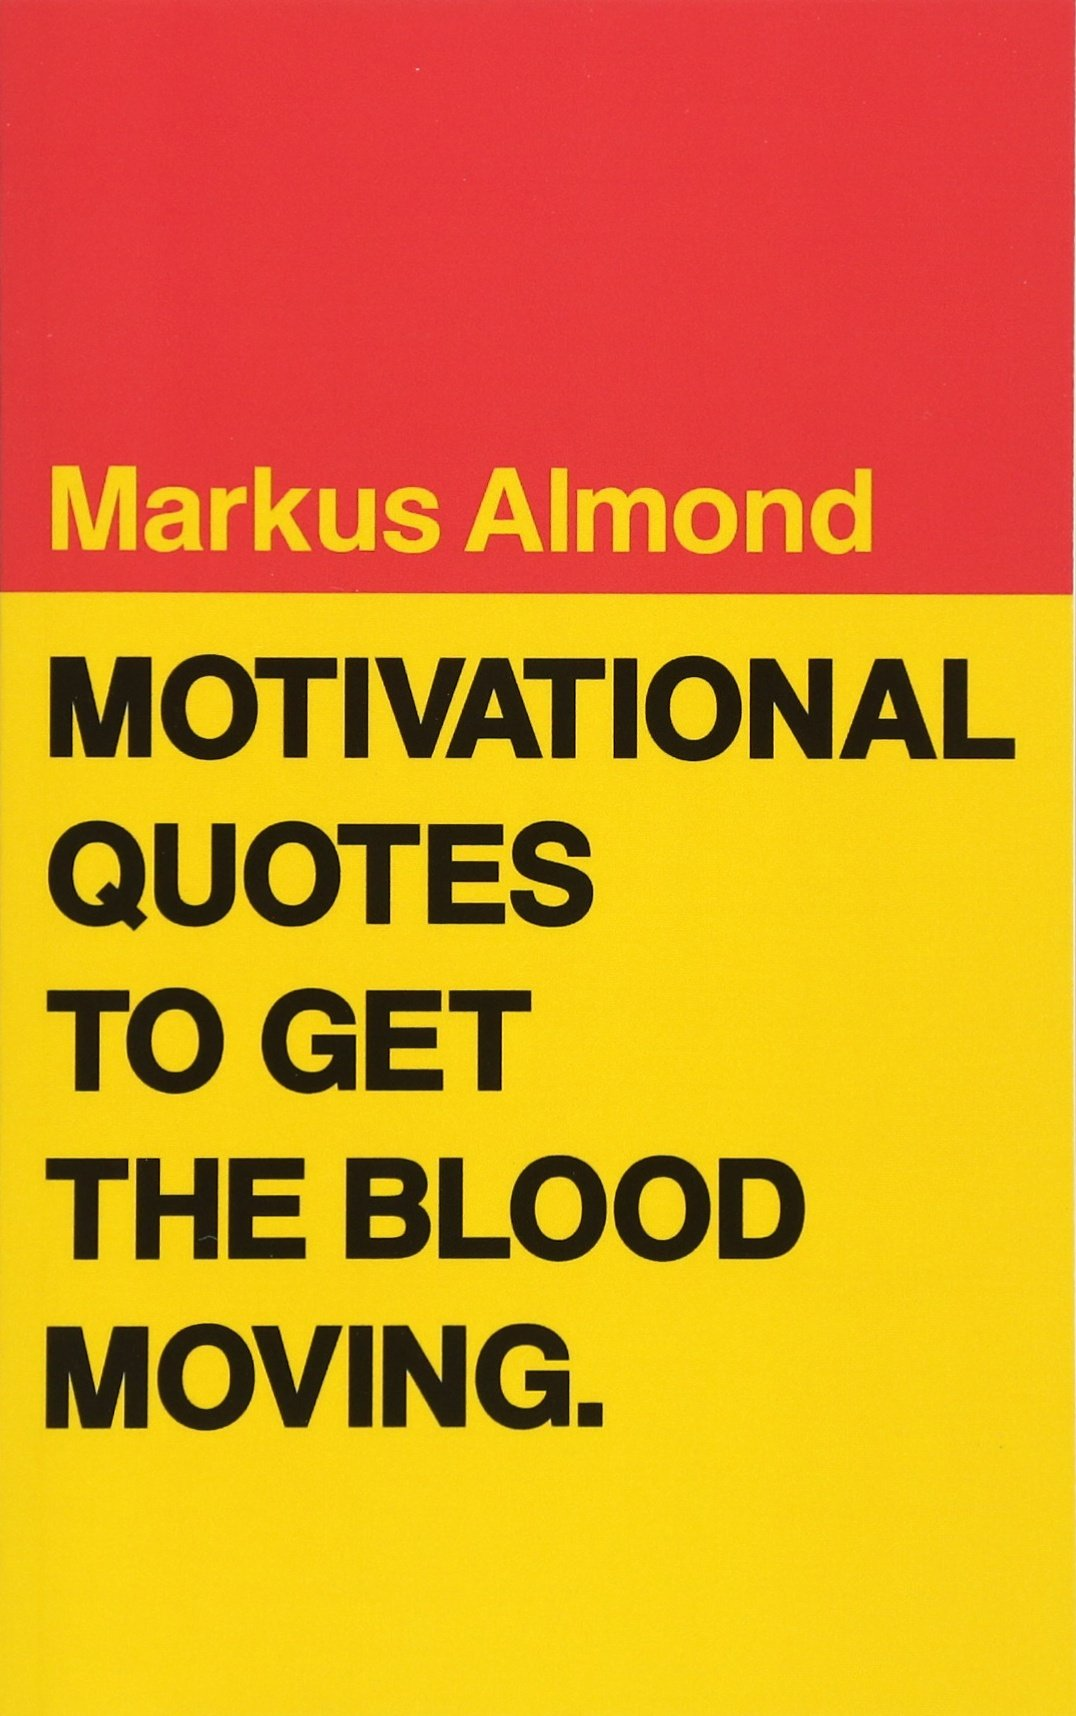 Motivational Quotes To Get The Blood Moving Markus Almond